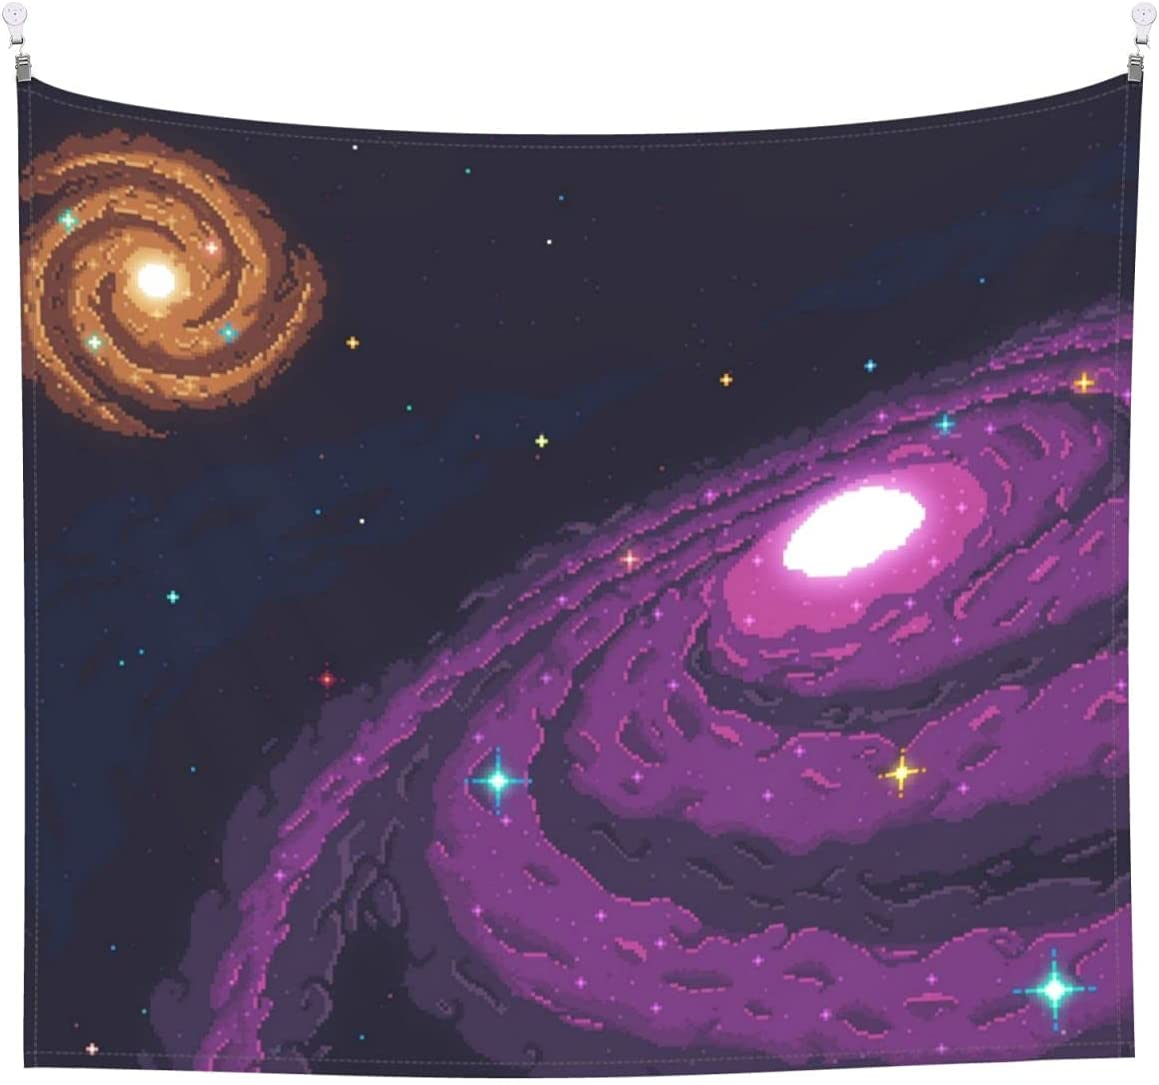 Tapestry galaxy Wall Daily Hanging Decorative 35% OFF Houston Mall